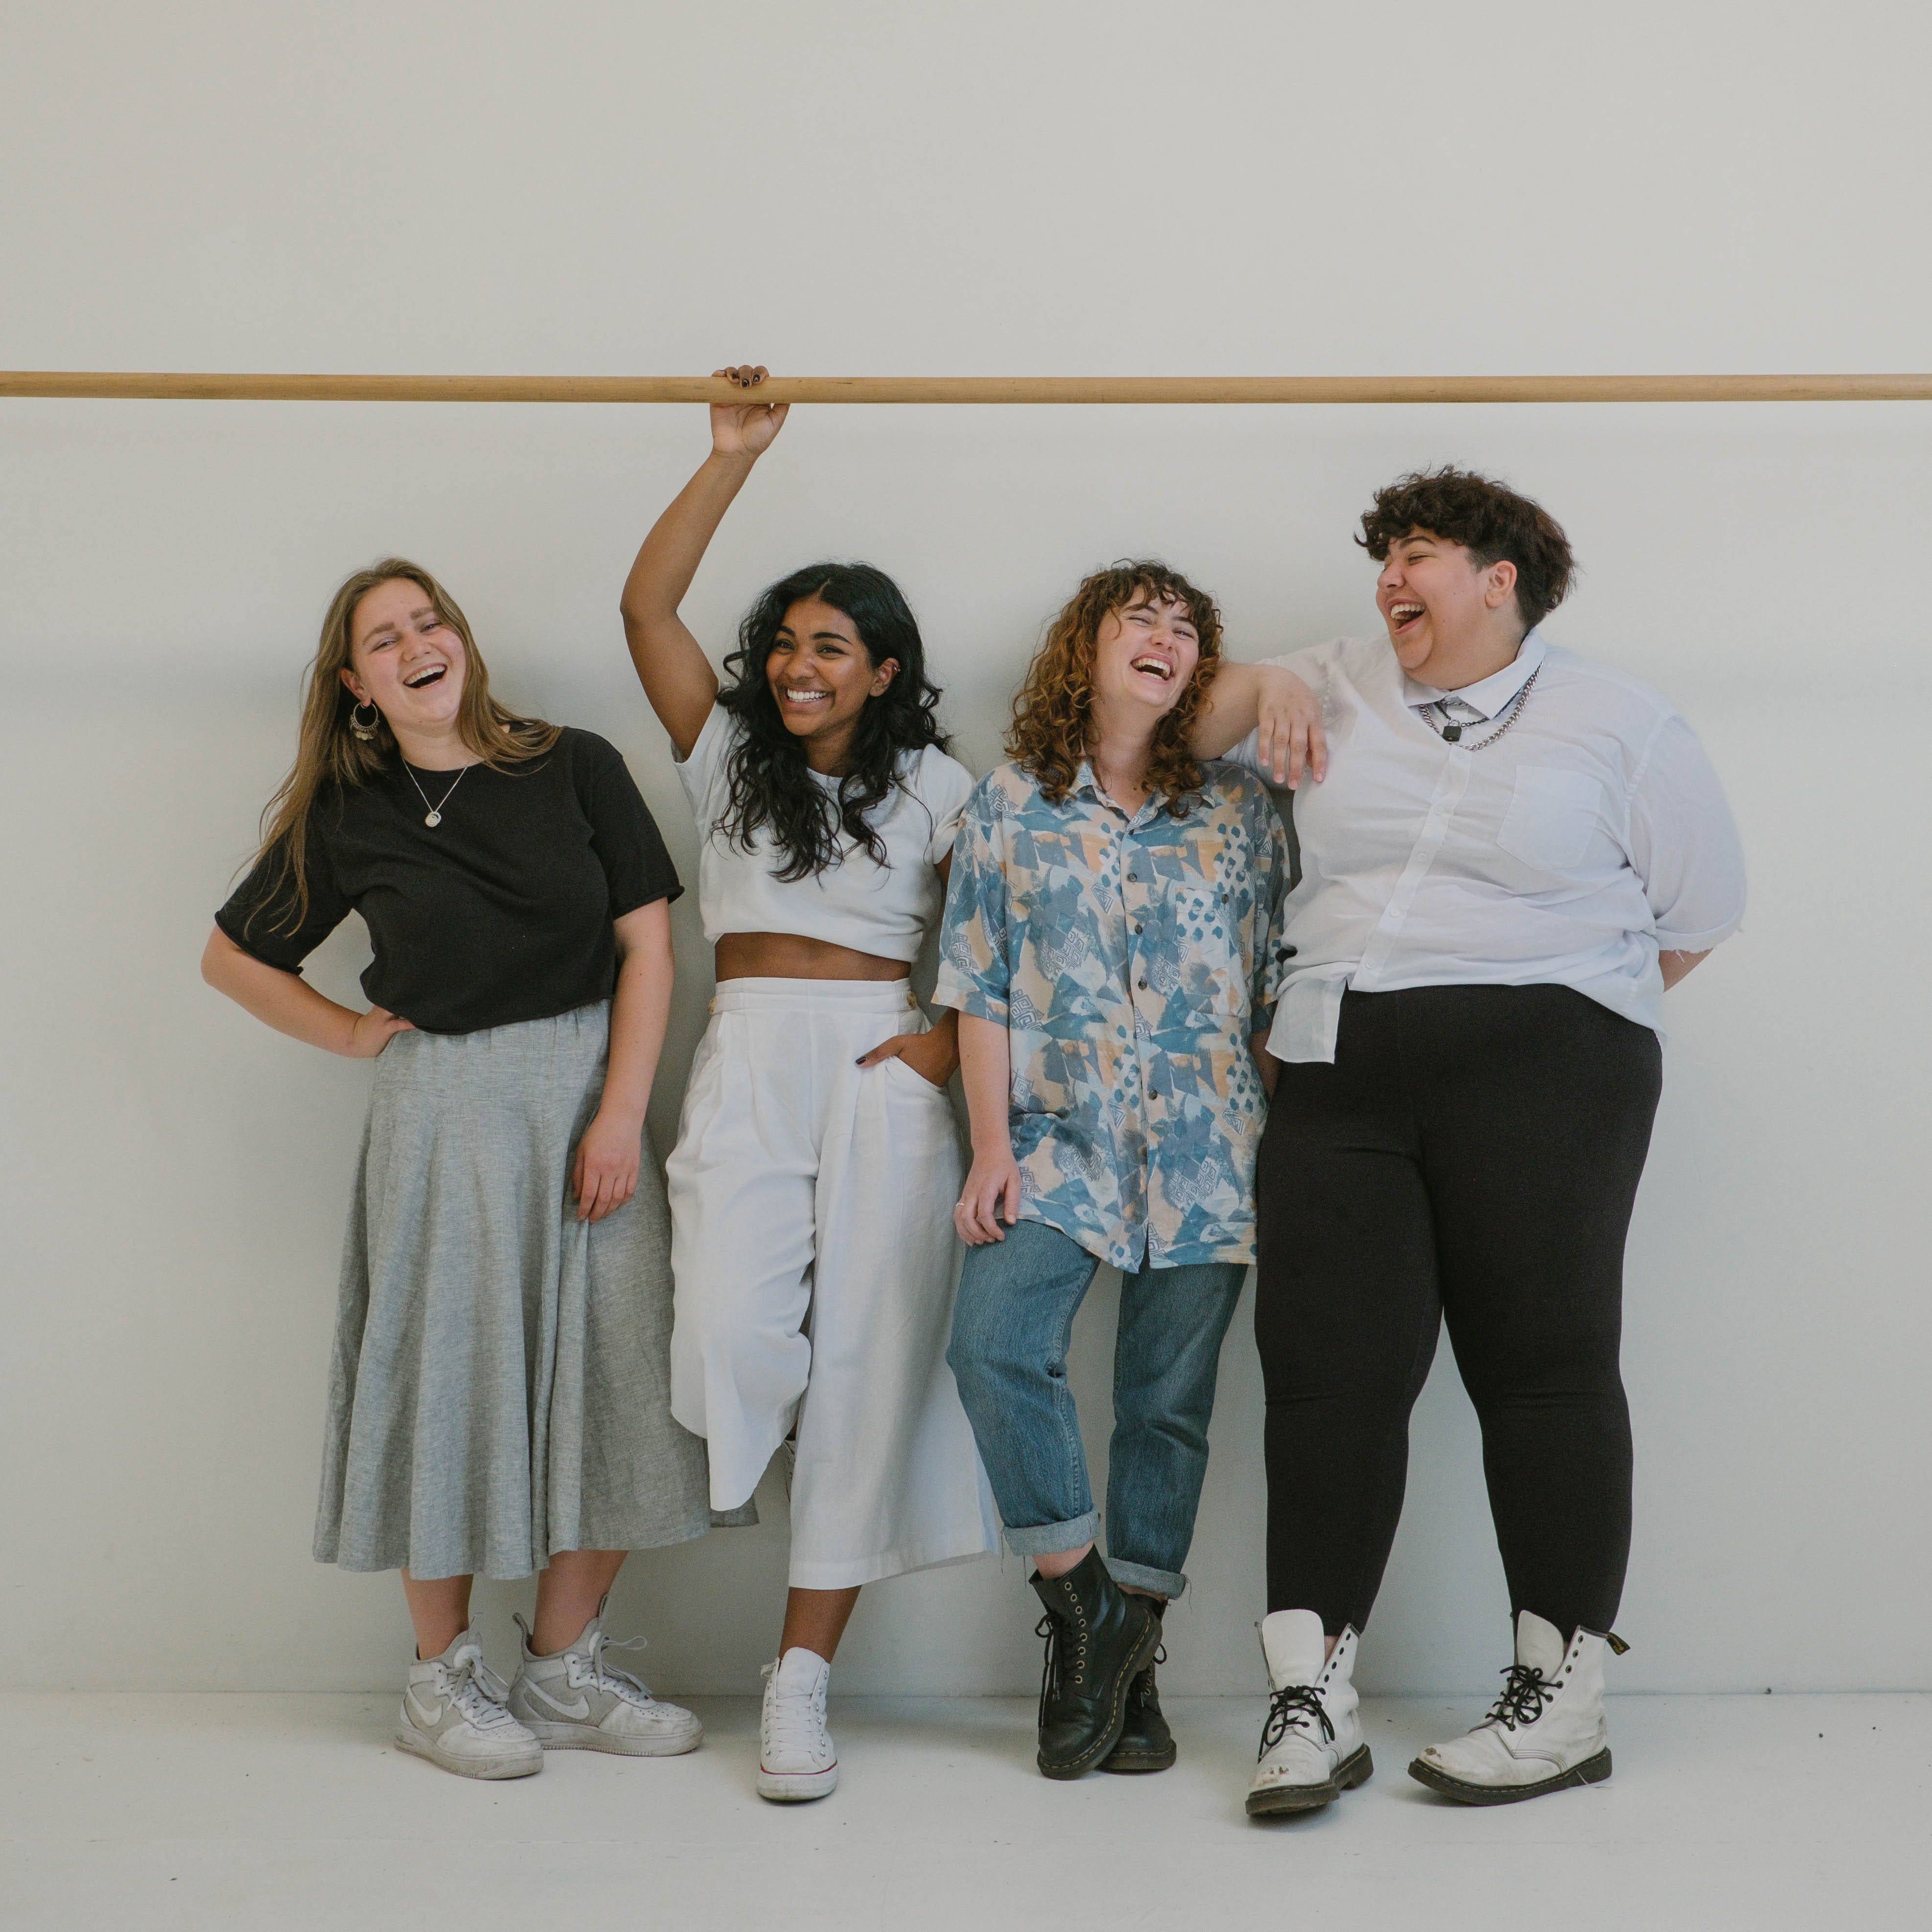 Four women standing next to each other, most of them are overweight.